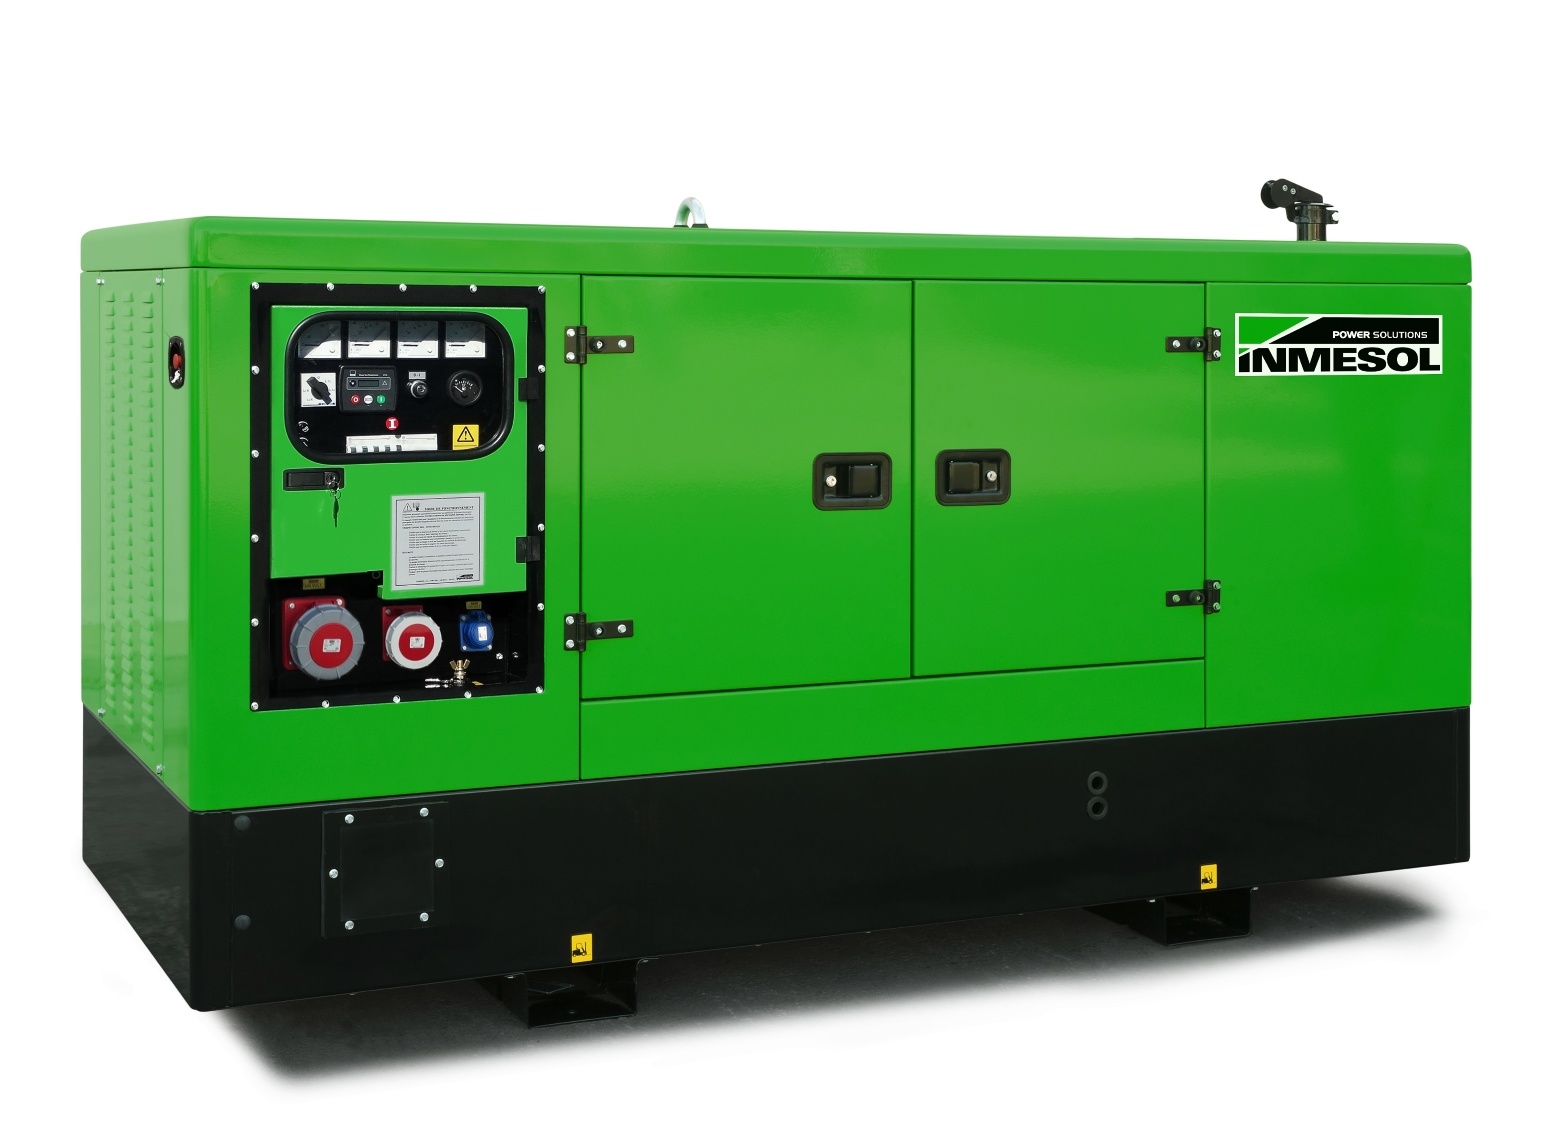 Generator with manual control panel.IK-066 - KOHLER - KDI3404TM - 1.500 R.P.M. | 50 Hz